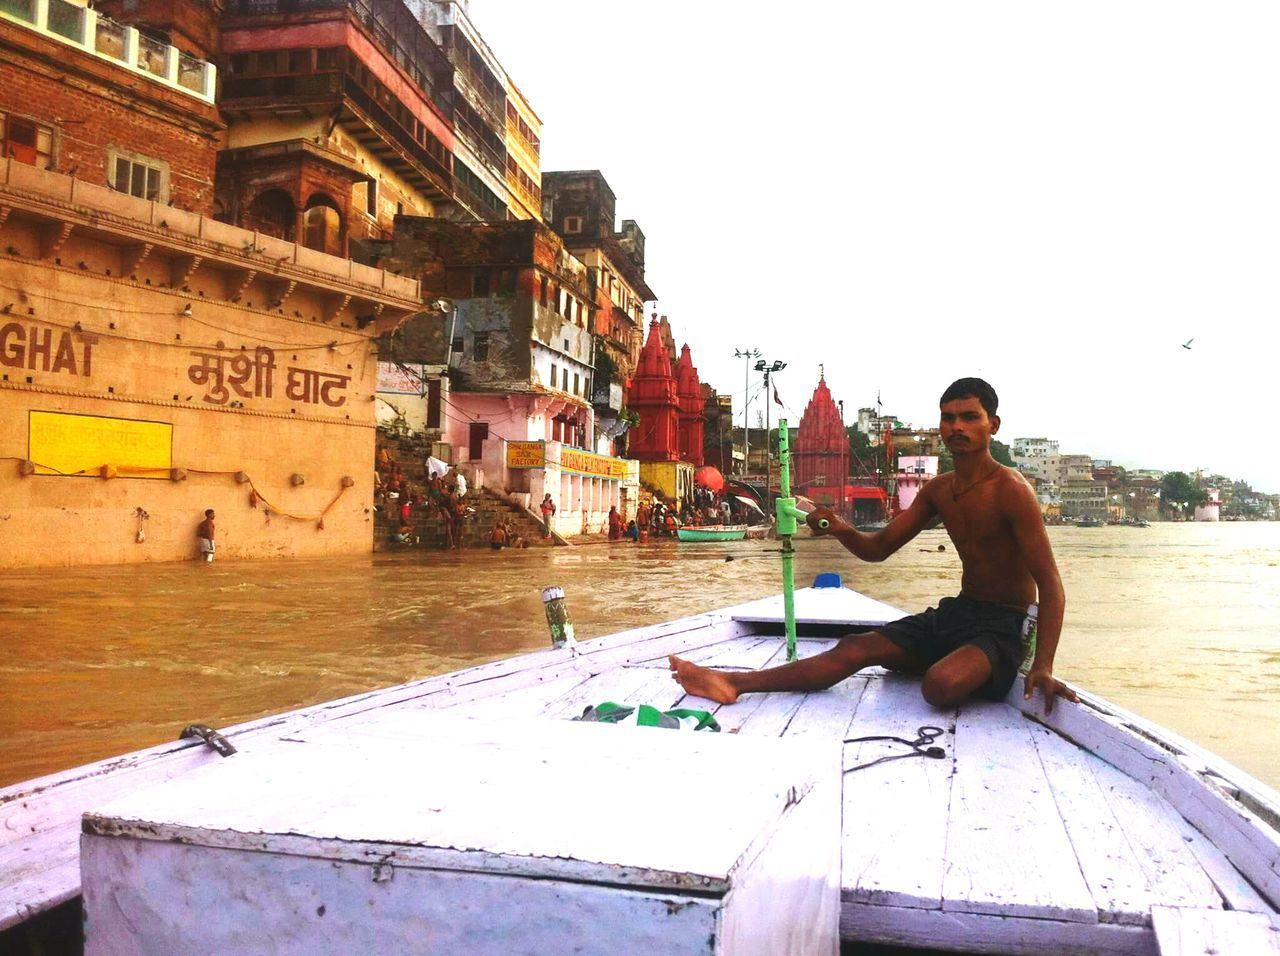 India Incredibleindiaofficial Varanasi, India Ganges, Indian Lifestyle And Culture, Bathing In The Ganges, Wonderlust BackpackersMemories